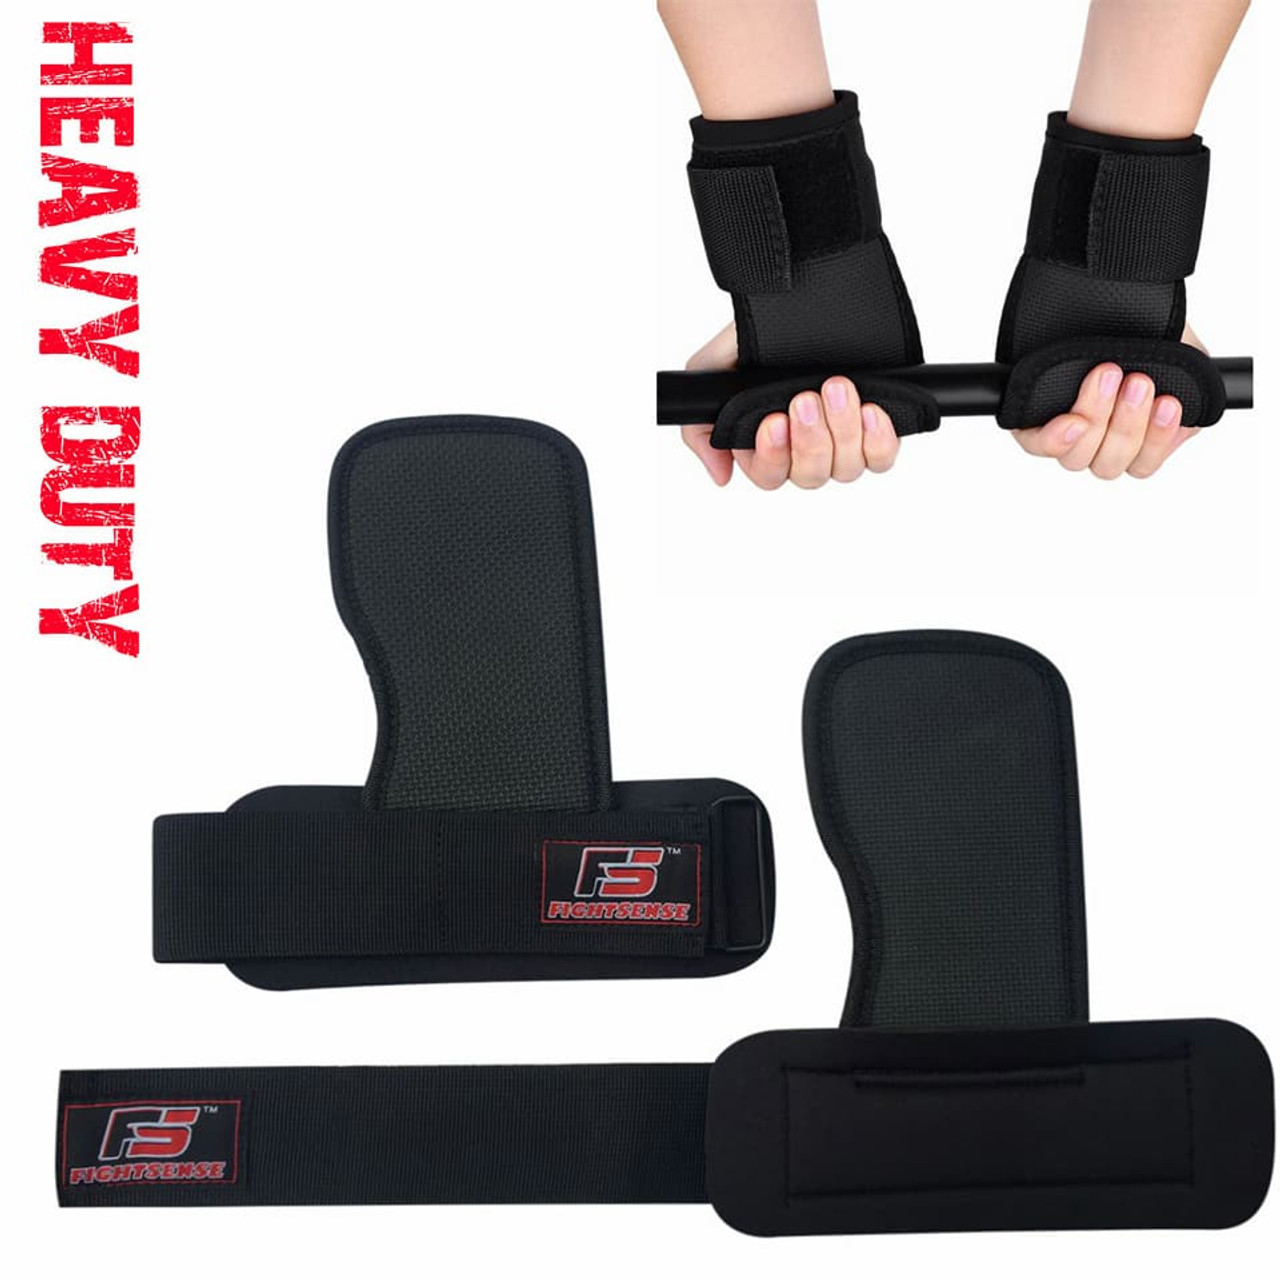 Weight Lifting Training Gym Straps Hand Bar Wrist Support Gloves Palm Wrap Grips